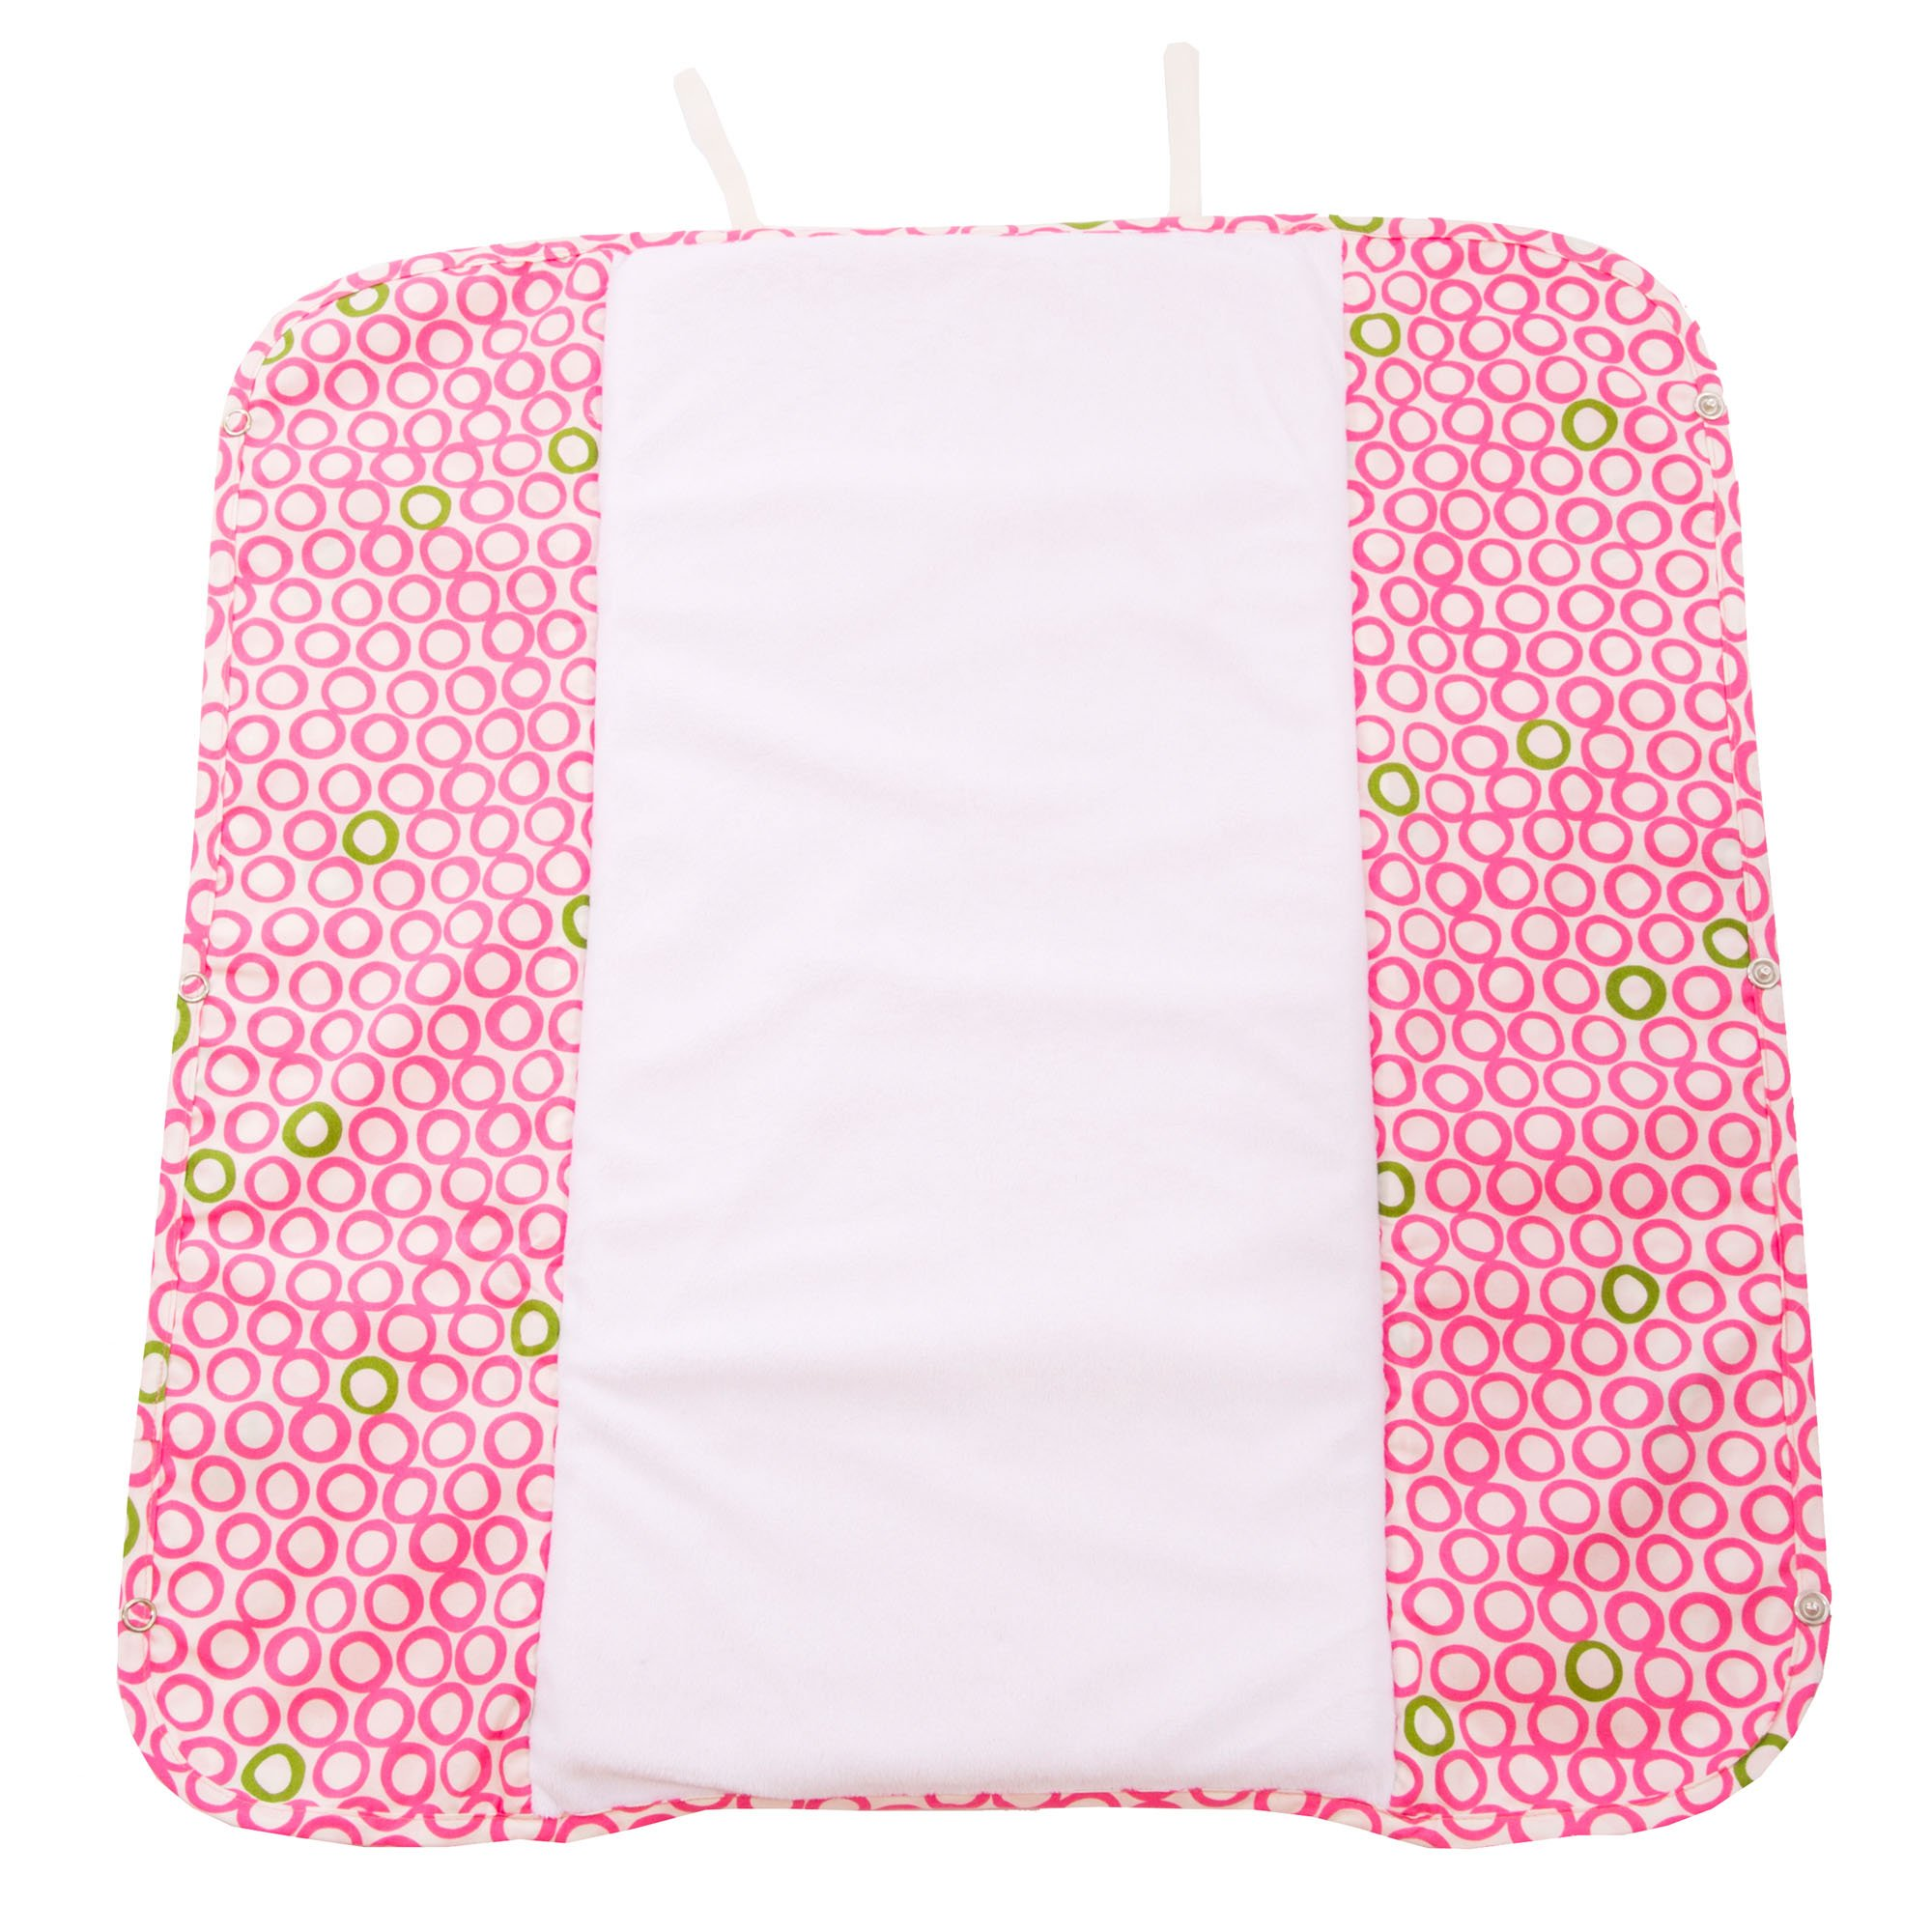 The Plush Pad Portable Changing Pad with Memory Foam, Bubbles in Juice Pattern by Ah Goo Baby